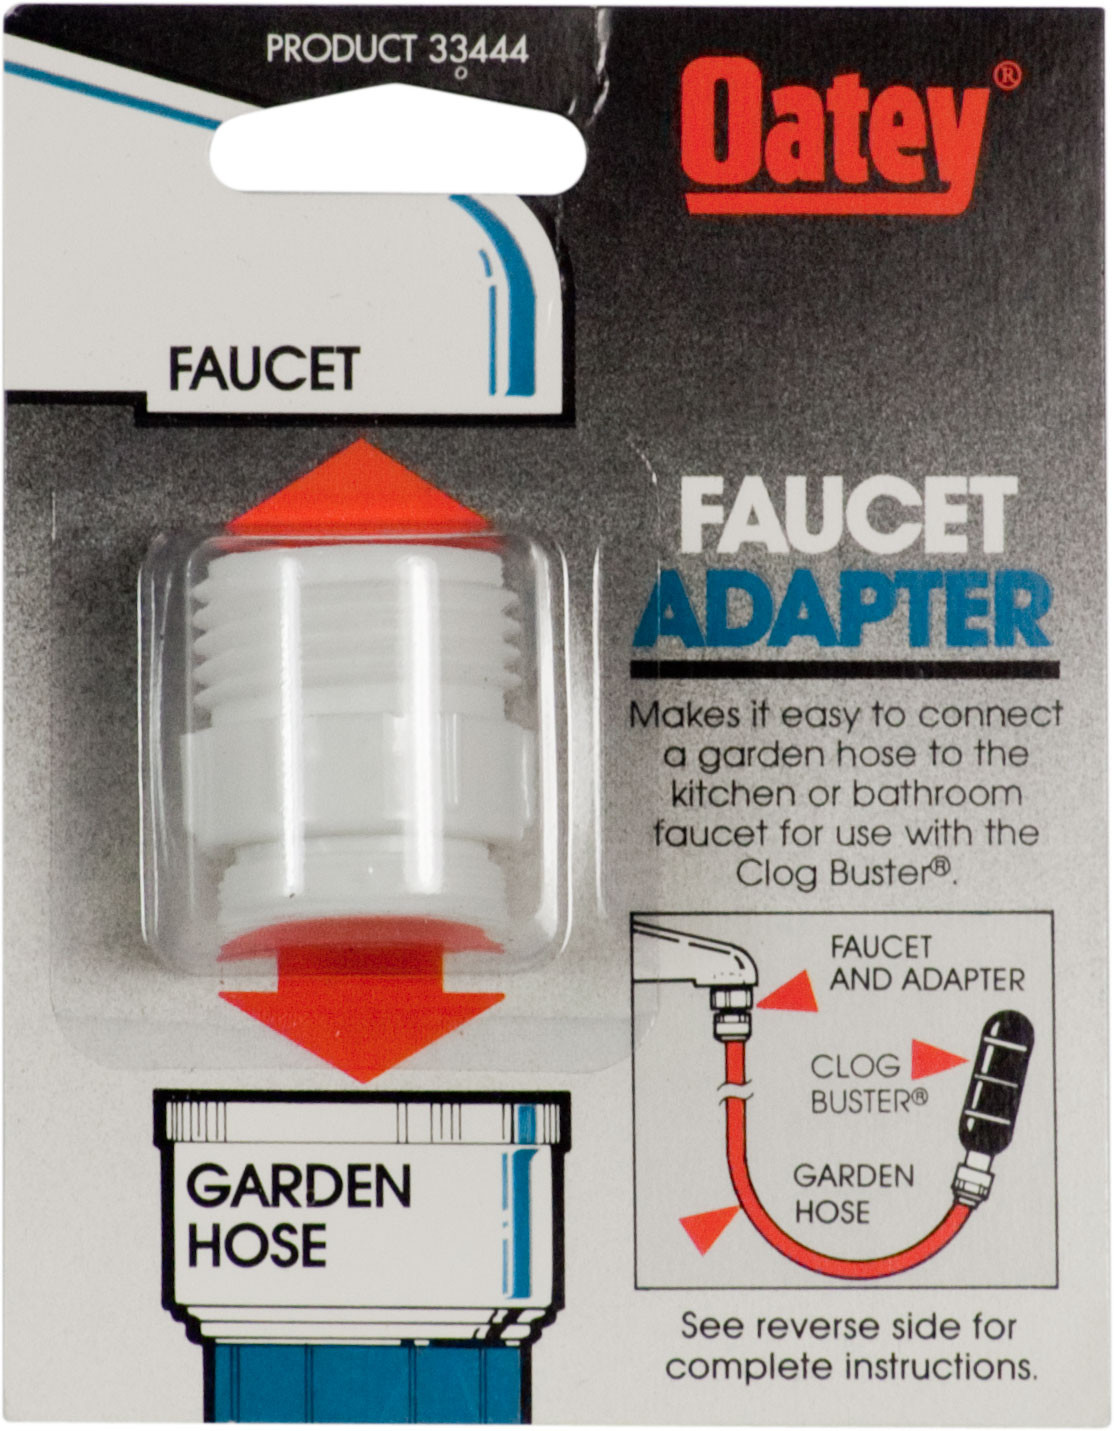 Oatey 33444 Faucet Adapter To Connect A Garden Hose To A Kitchen Or Bath Faucet 038753334448 1